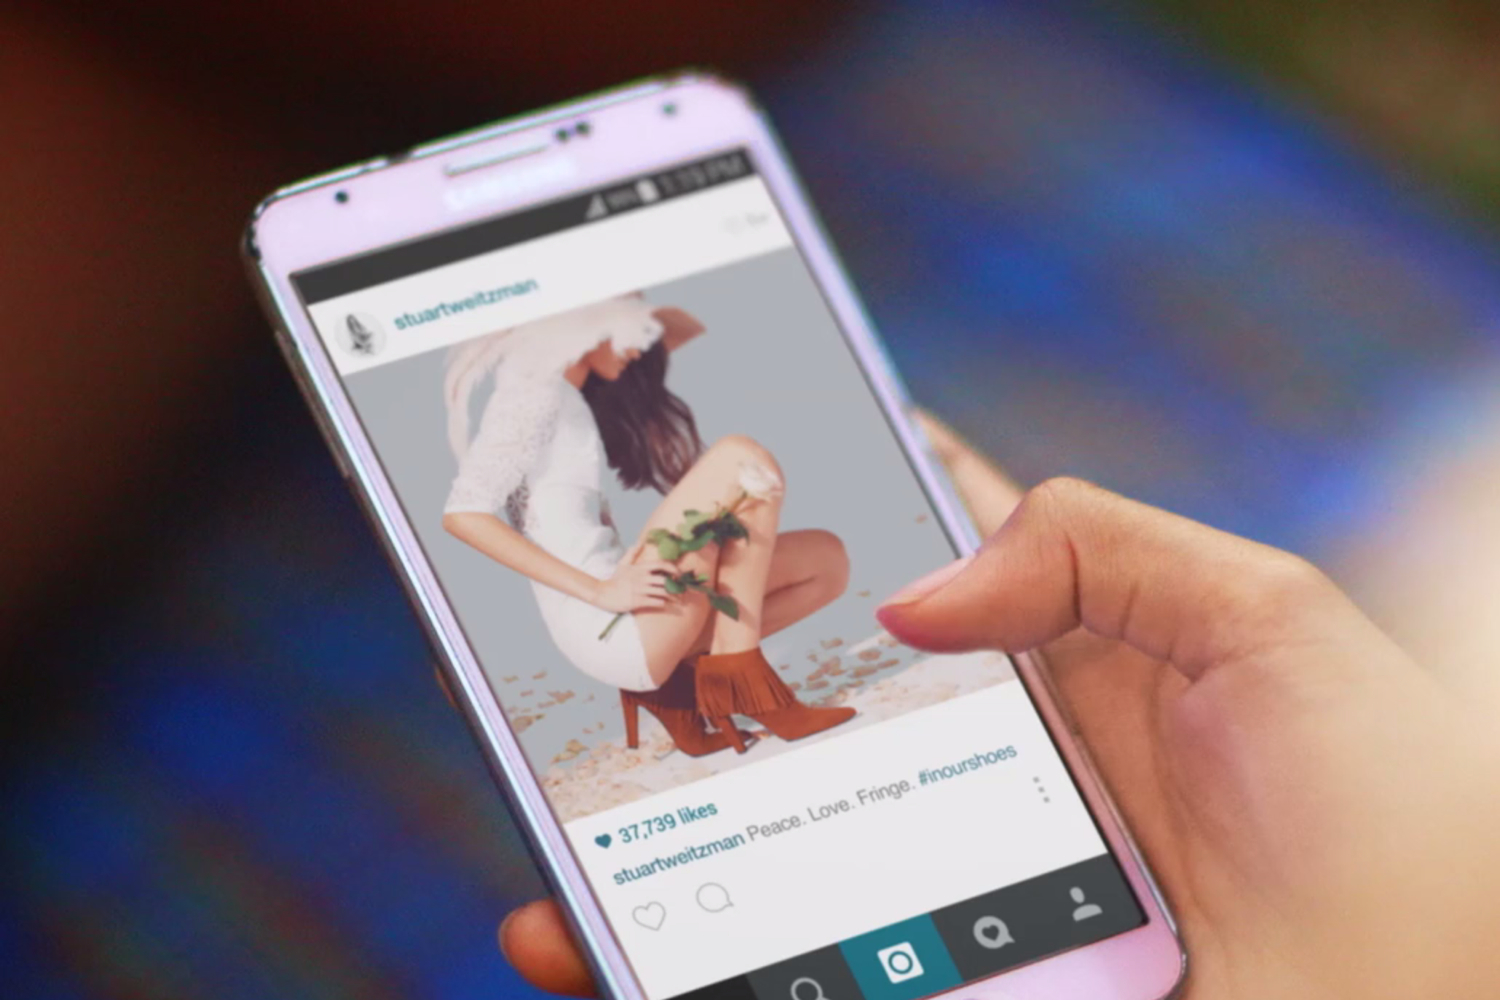 Insights, Instagram's Analytics Feature, Now Available To